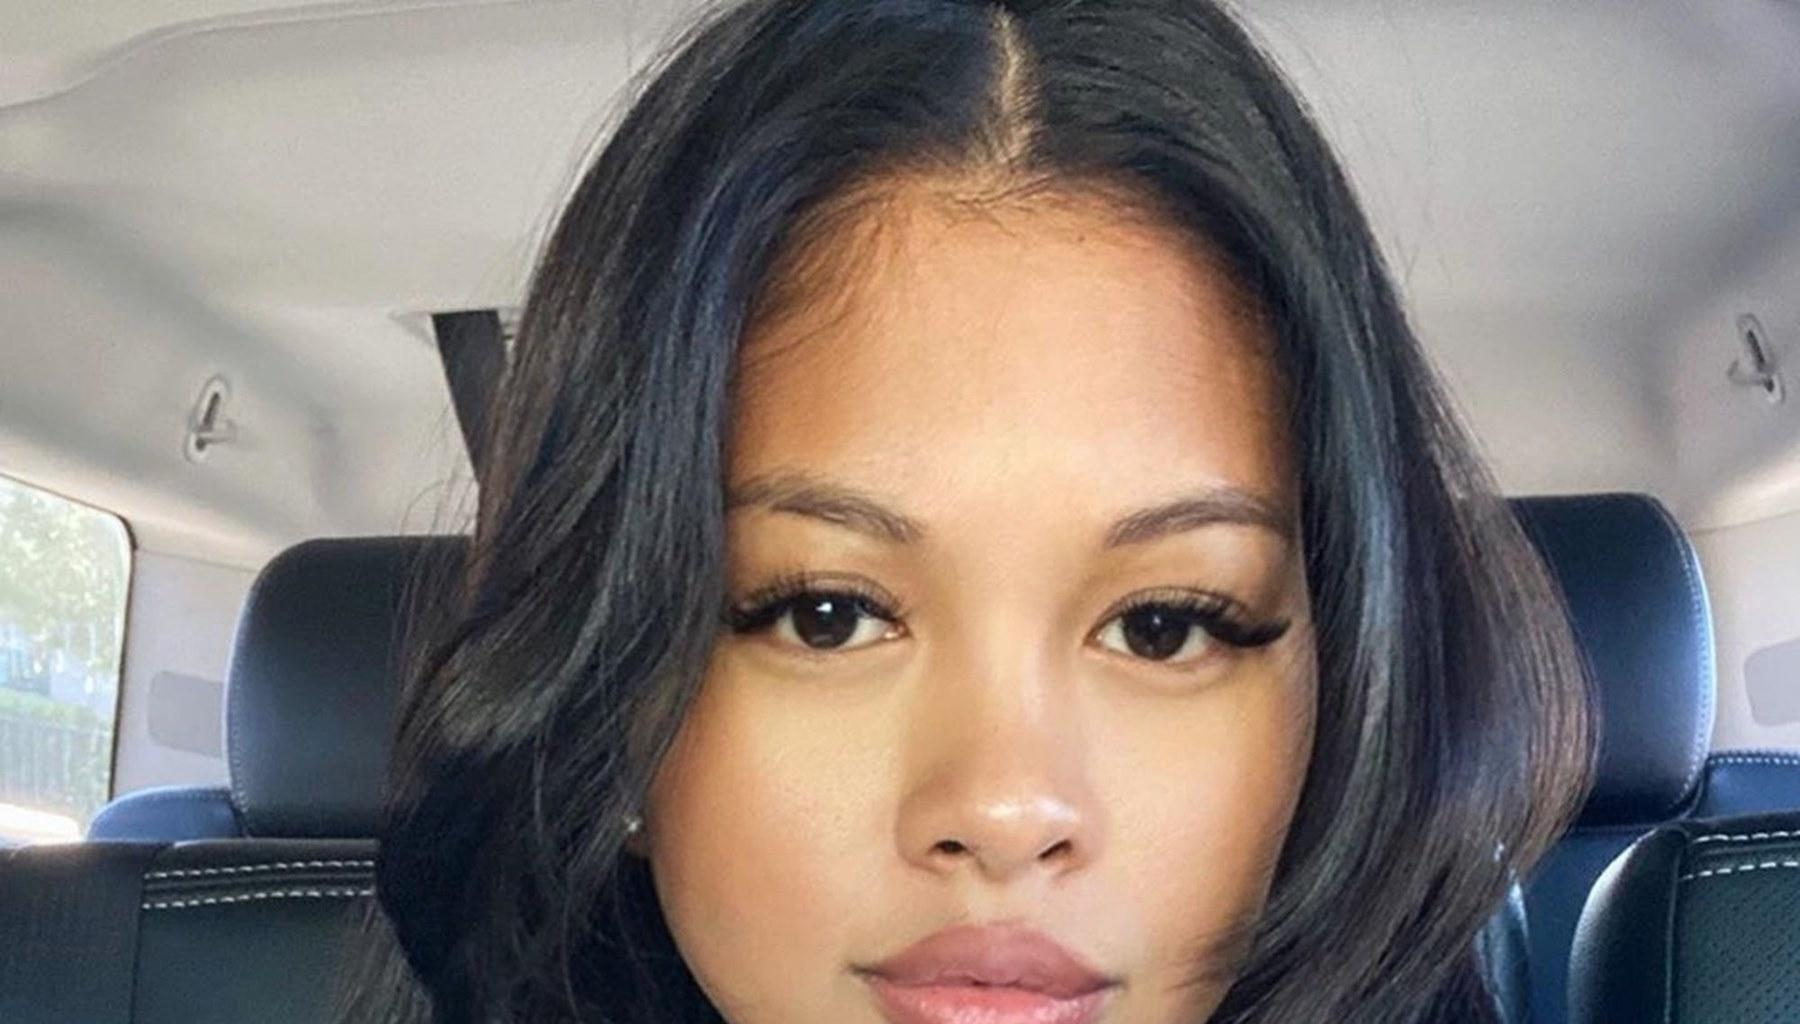 Chris Brown's Baby Mama, Ammika Harris, Debuts Her Stunning Friends In Playful Videos